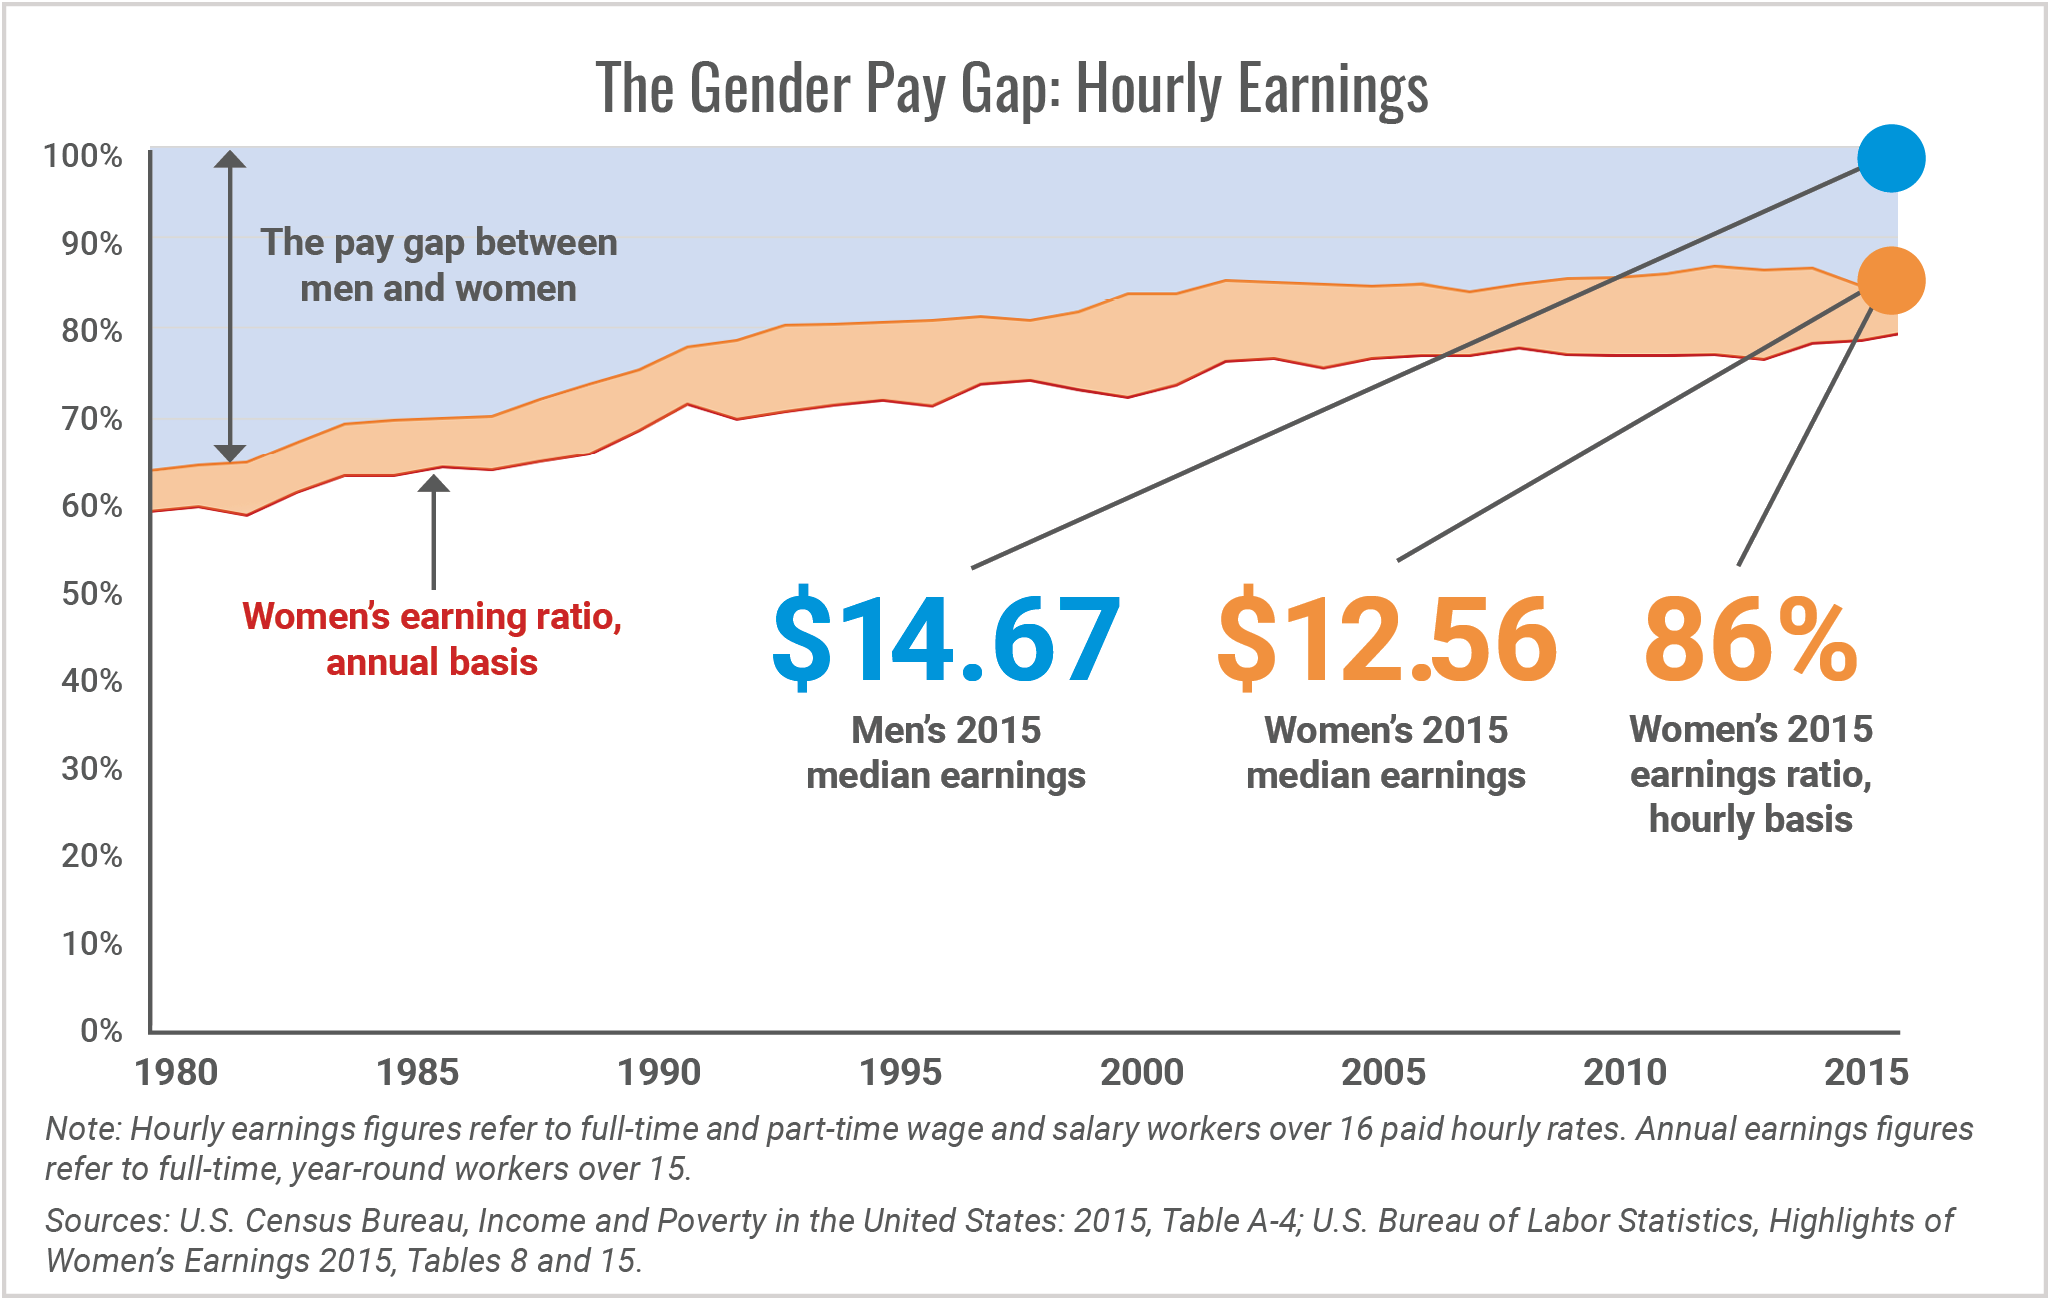 The Gender Pay Gap Hourly Earnings